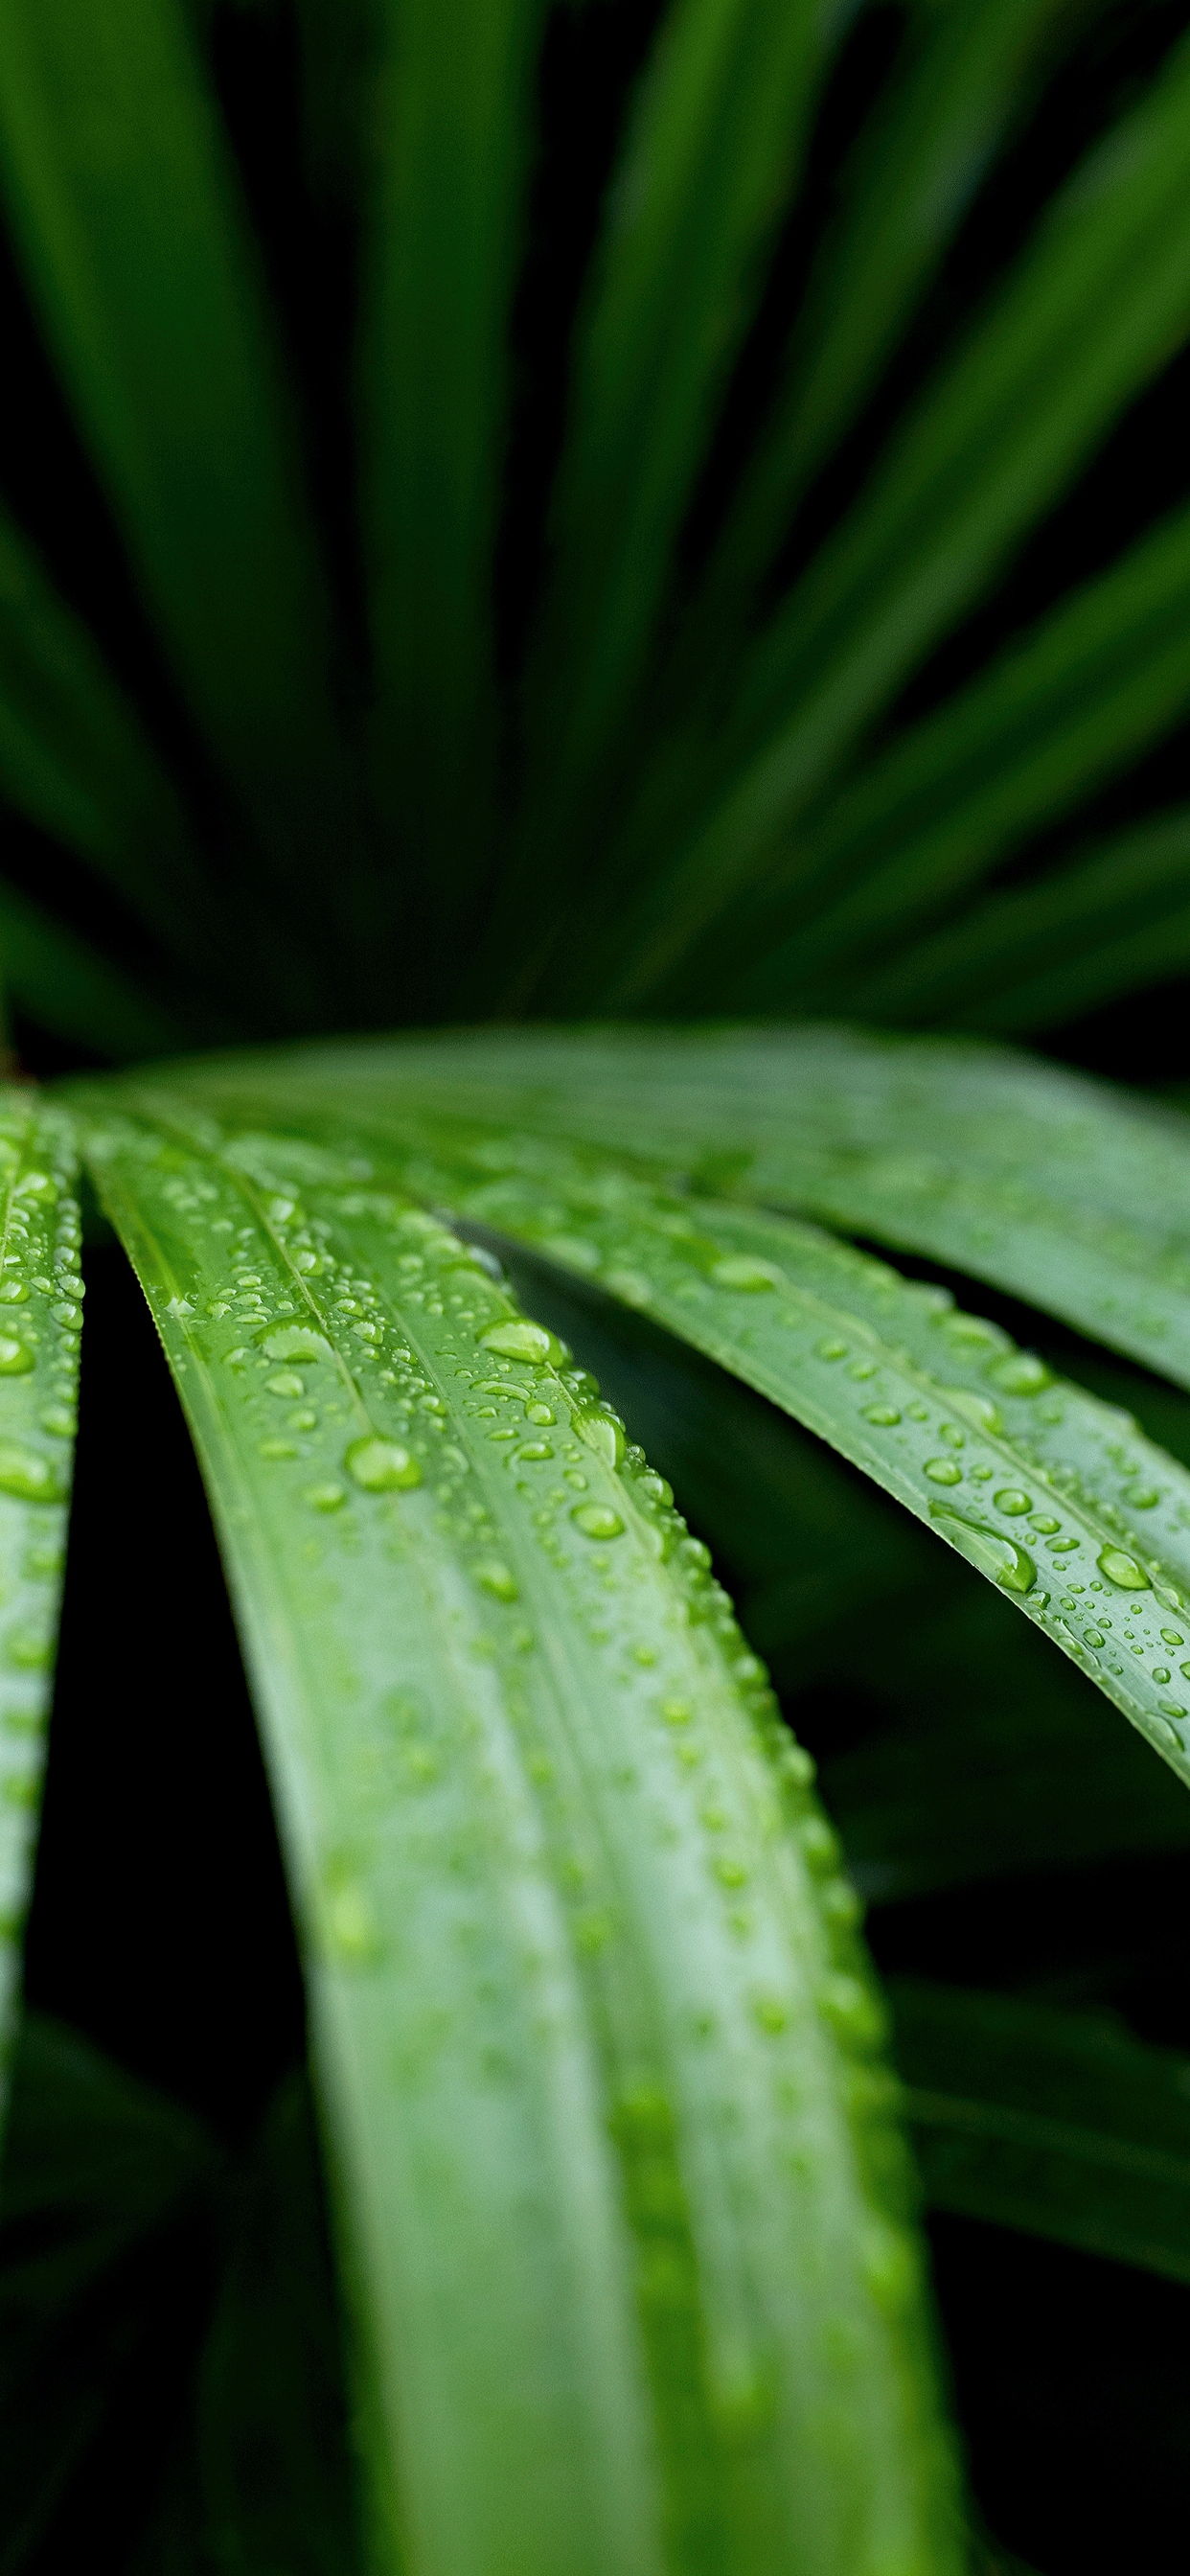 iPhone wallpapers plants lady palm Plants